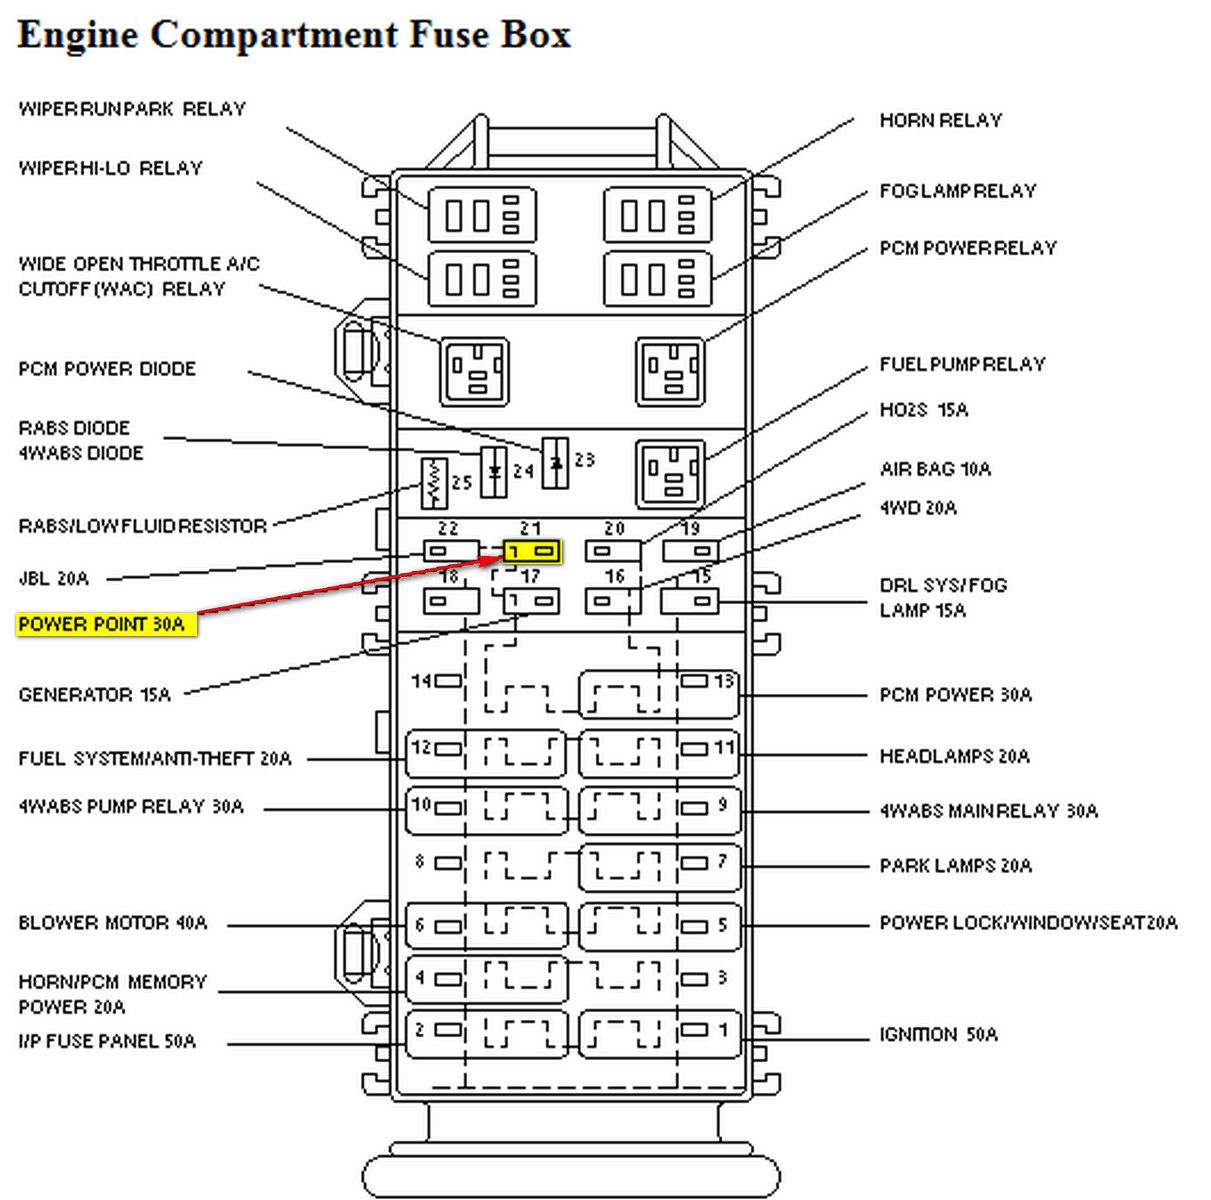 8a55967da7ae1bd251b795845886bd24 96 explorer fuse panel schematic ford explorer 4x4 hello, 1996 2008 ford ranger fuse box diagram at crackthecode.co